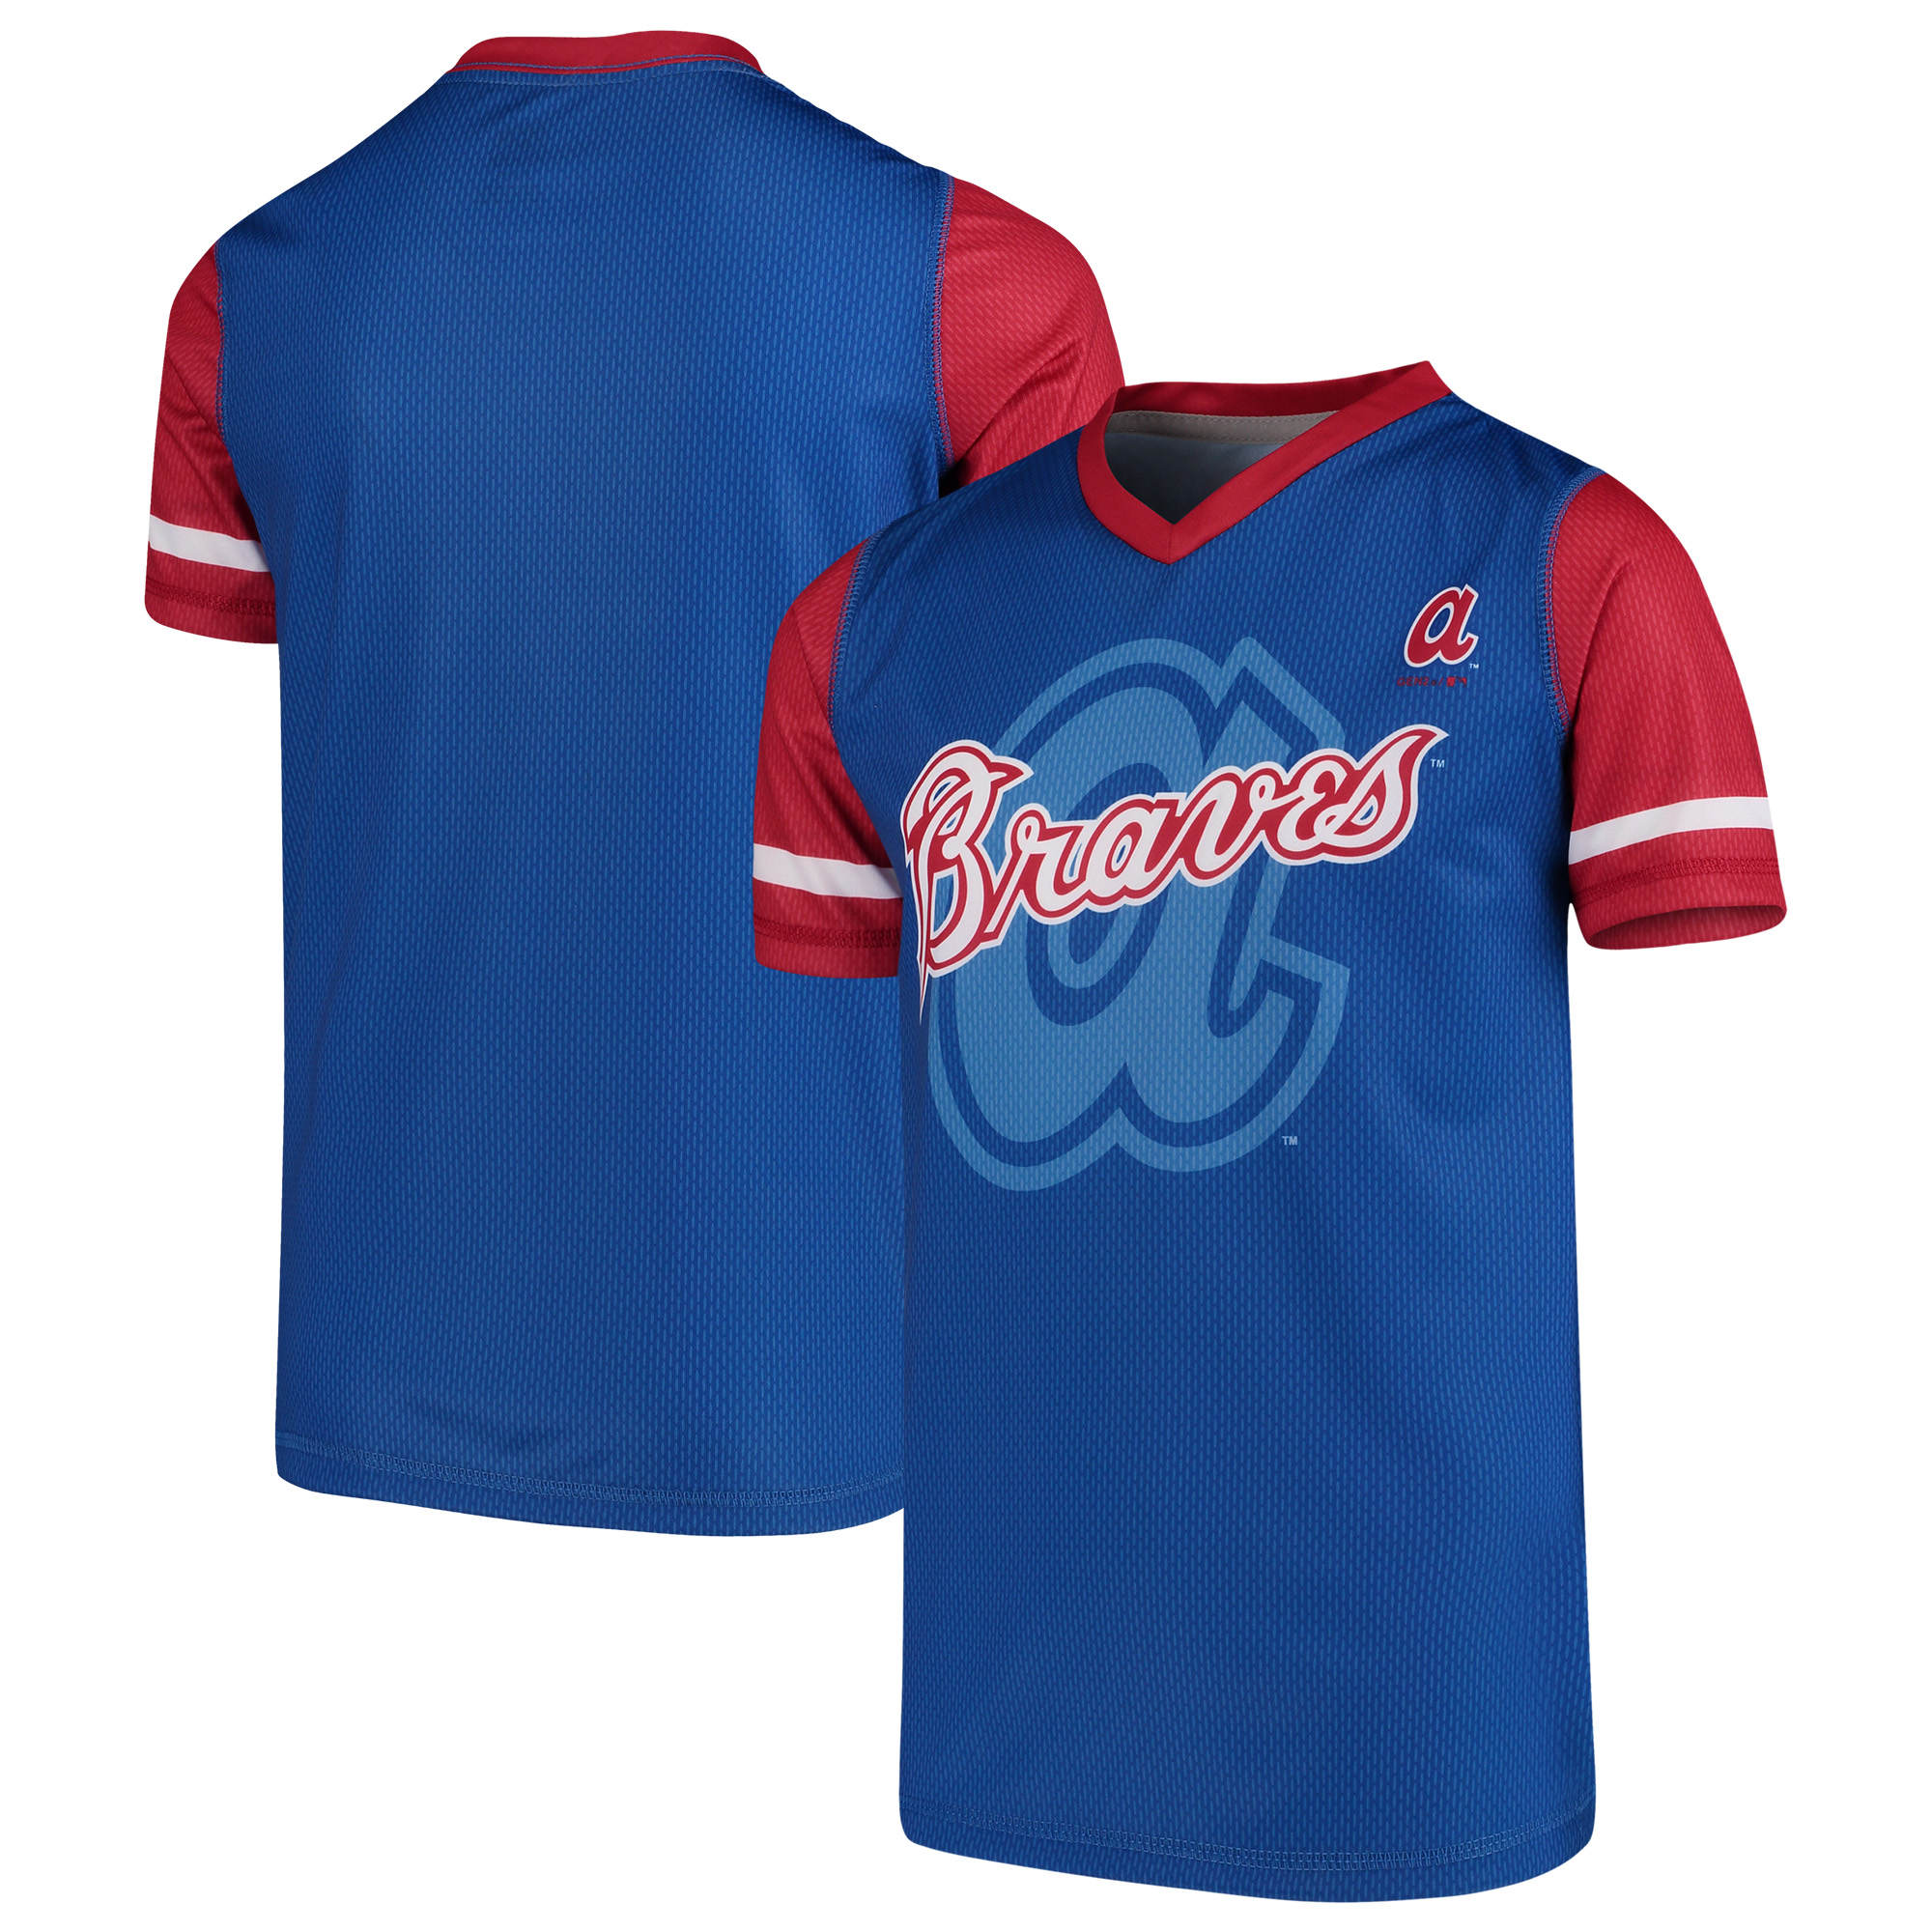 Atlanta Braves Youth Cooperstown Collection Play Hard V-Neck Jersey T-Shirt - Royal